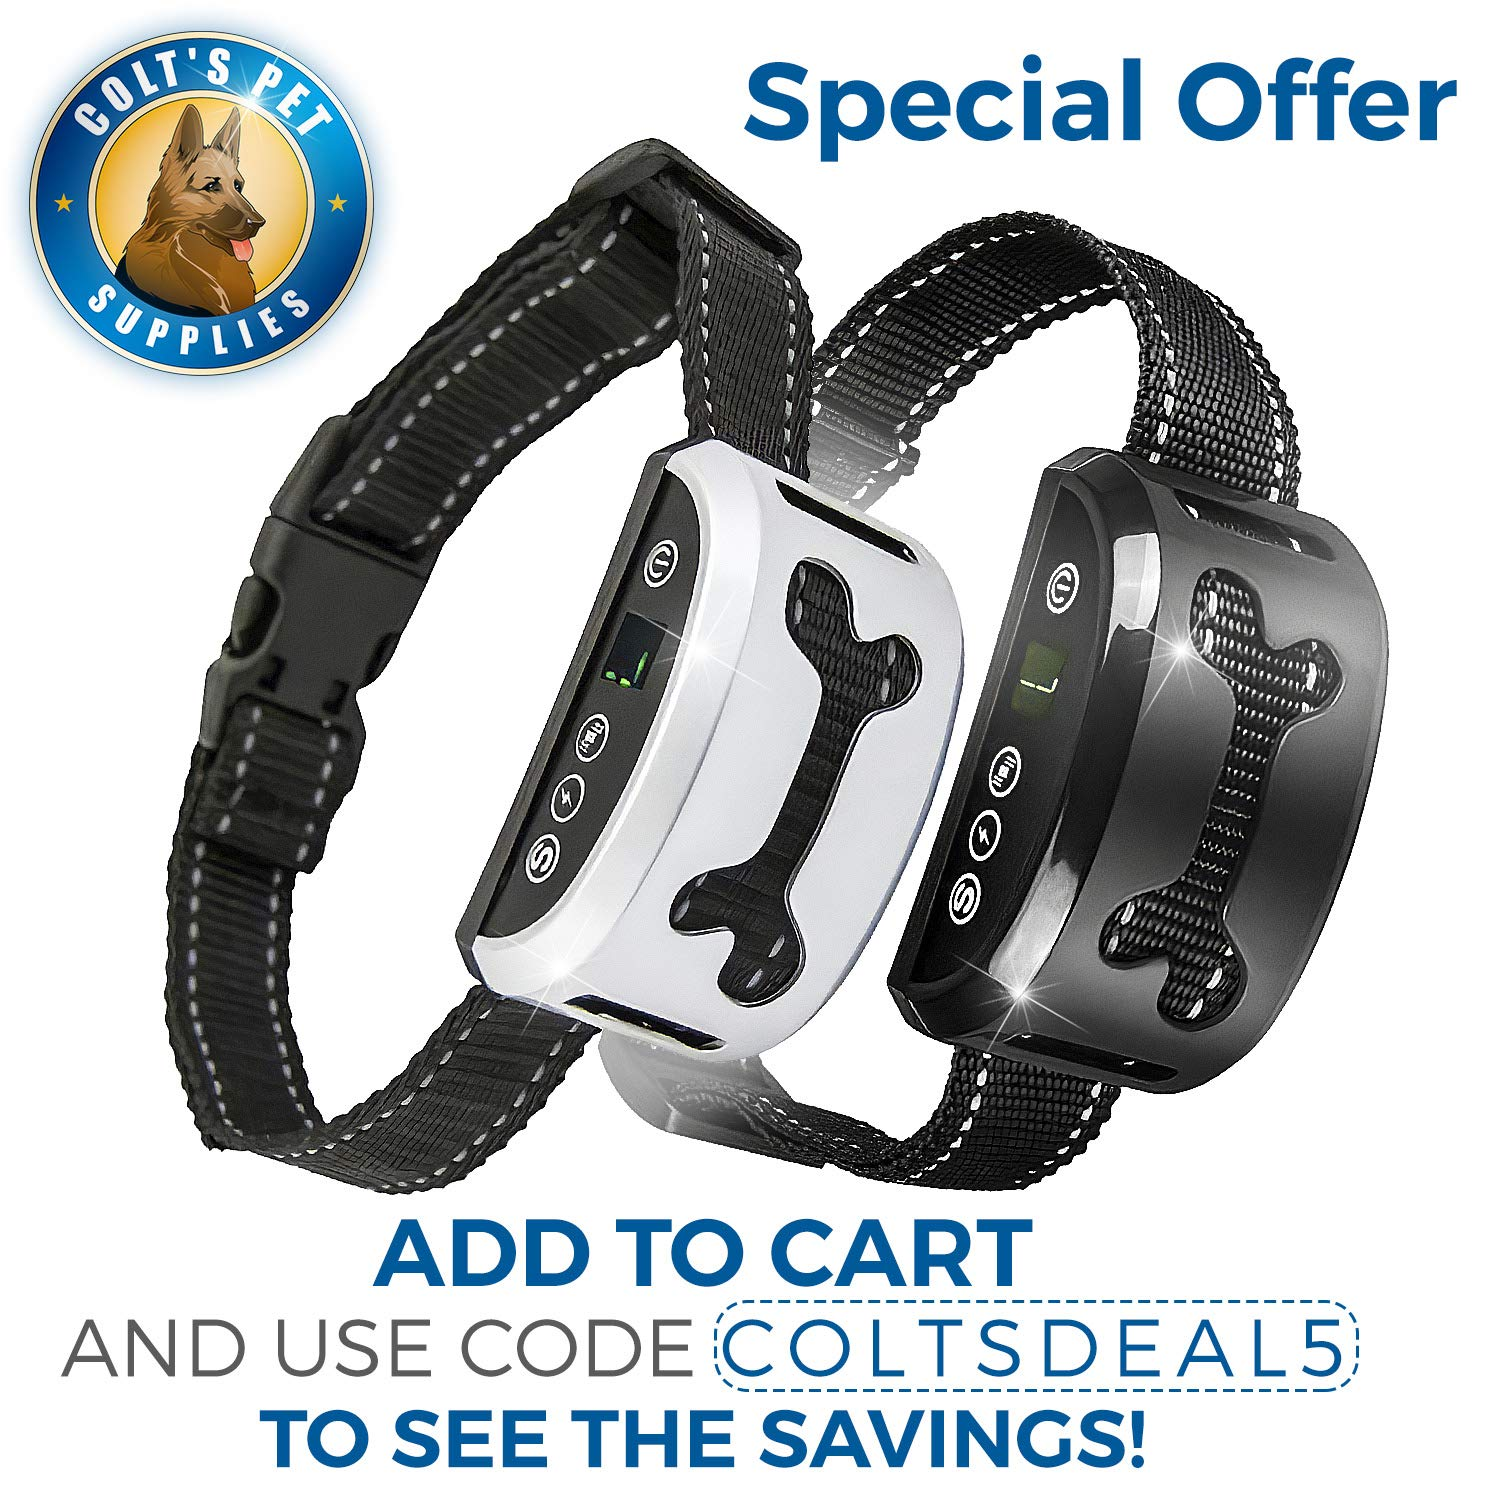 Bark Collar 2 Pack [Upgraded] | Anti-Barking Collar | Smart Chip | Beeps/Vibration/Shock Mode | For Small Medium and Large Dogs All Breeds Over 6 Lbs by Colt's Pets Supplies